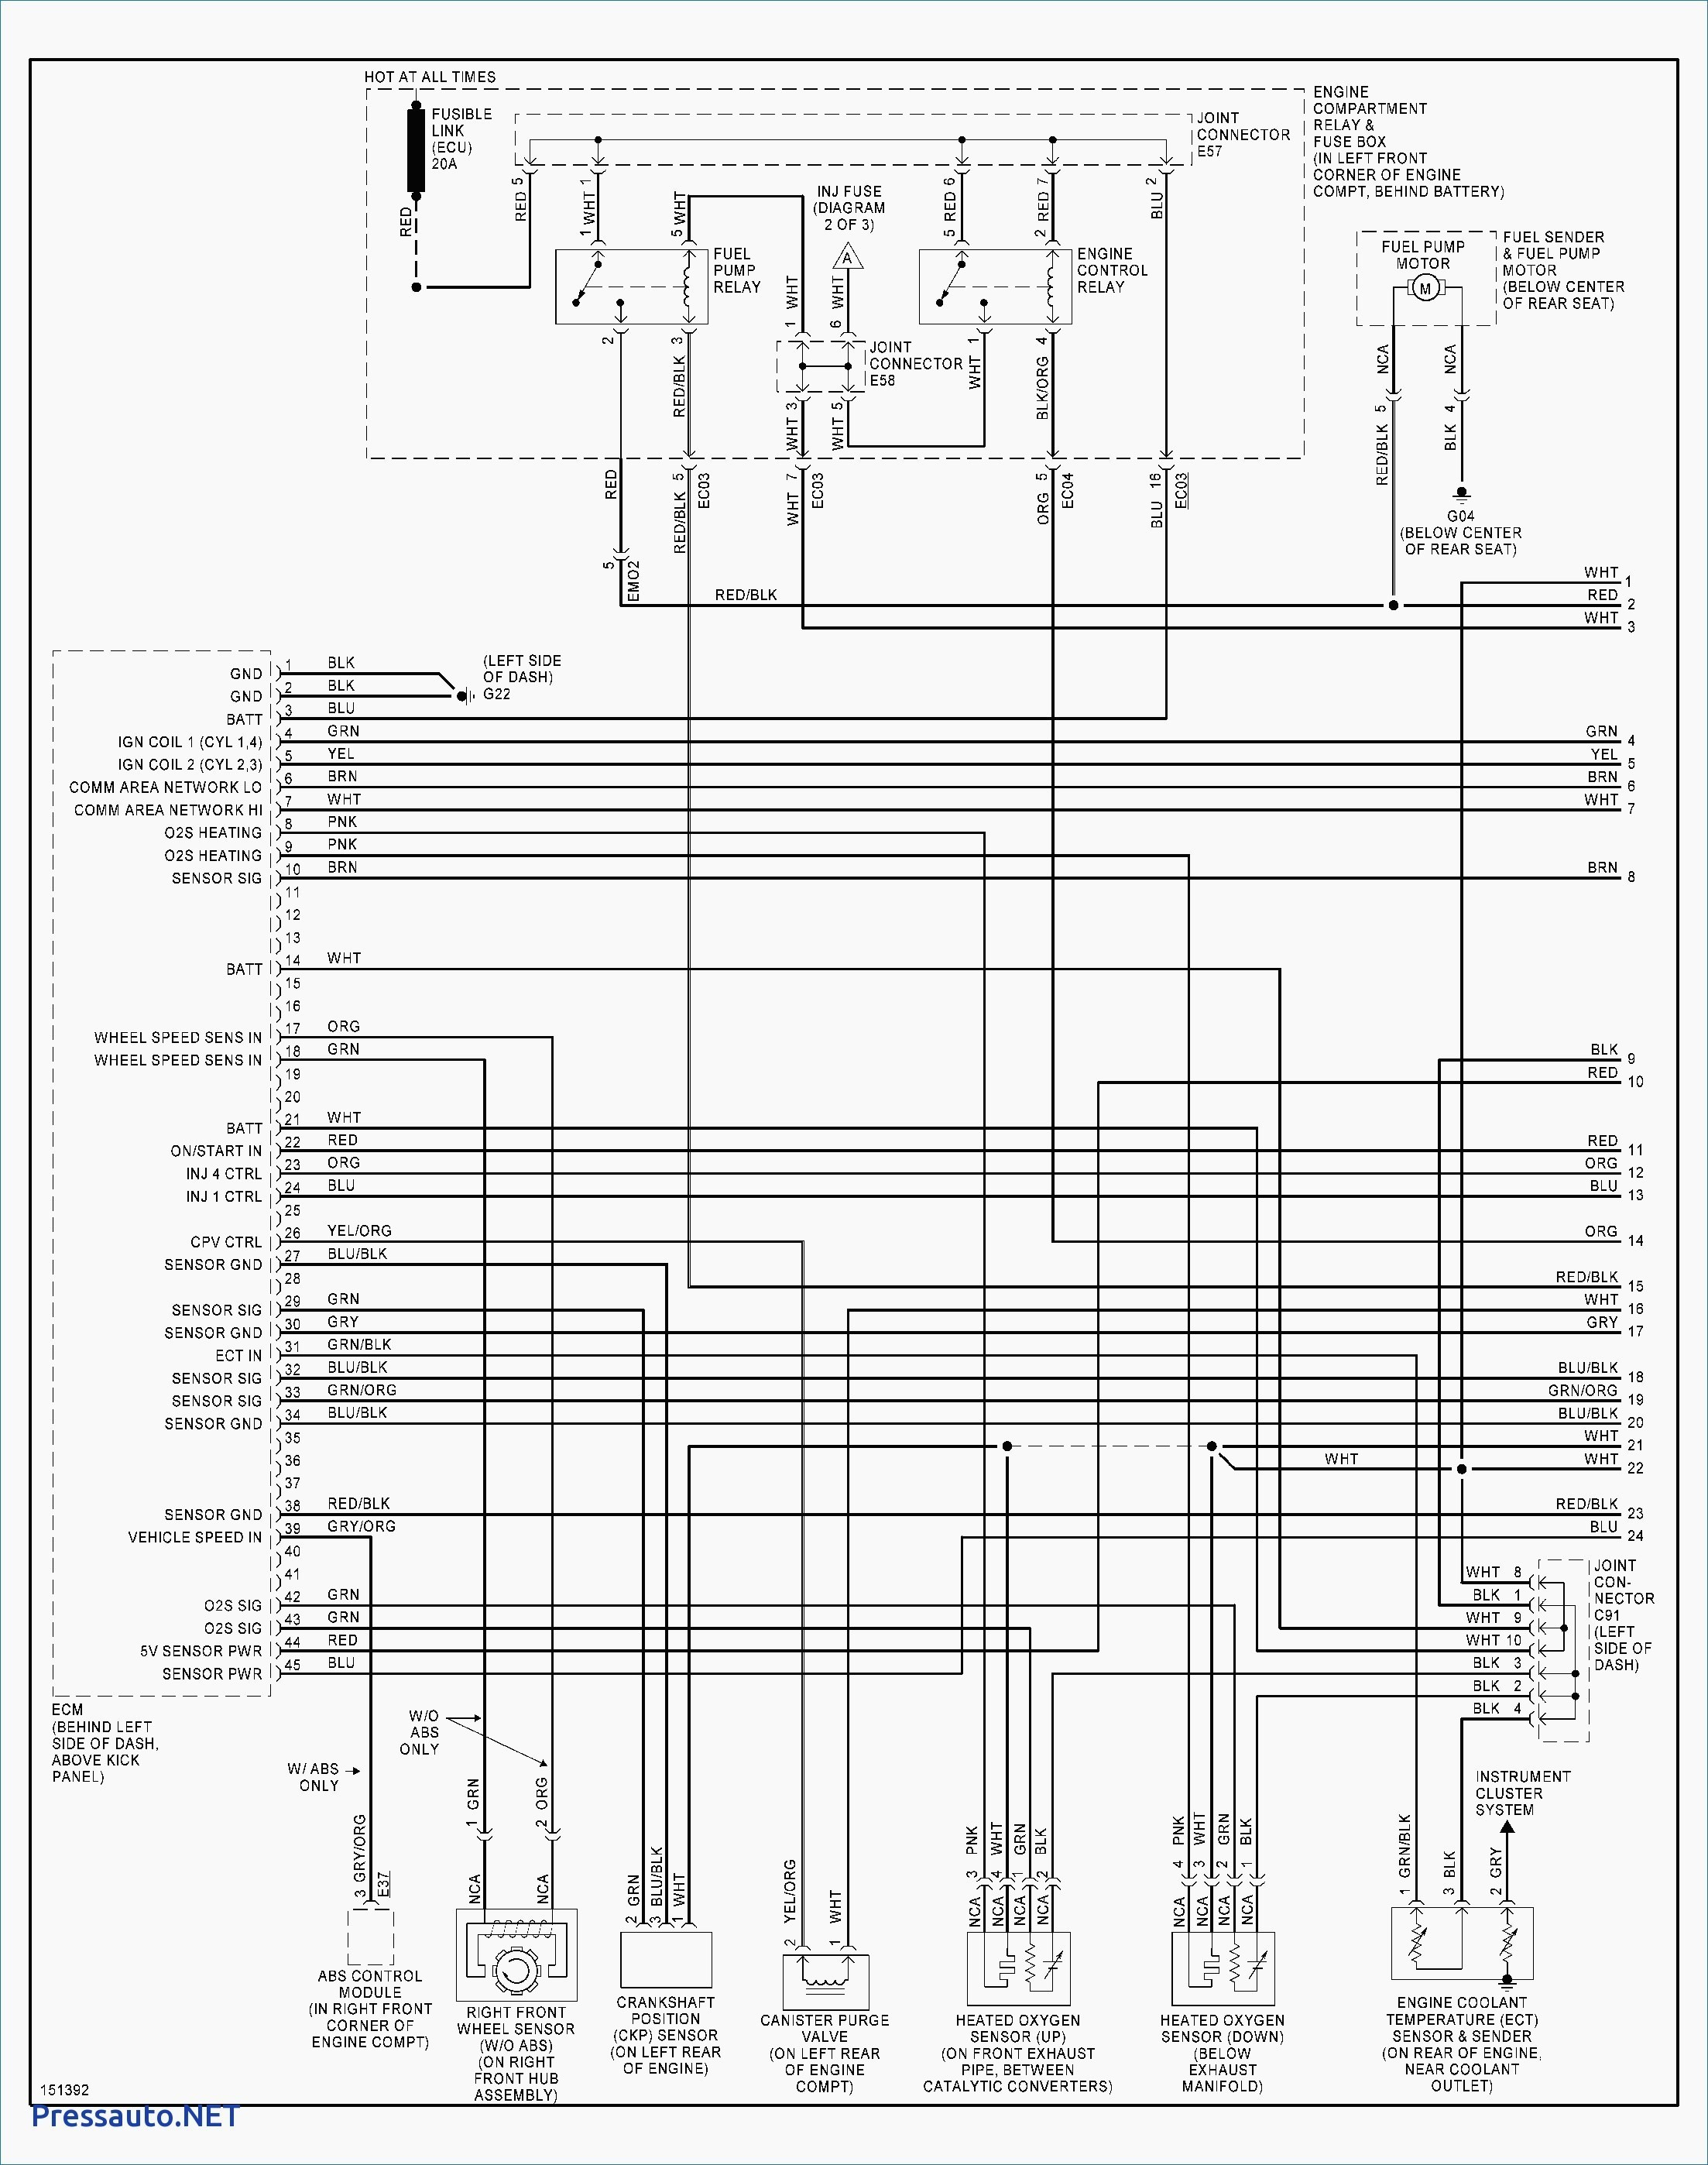 Hyundai Sonata 1997 Wiring Diagram Starting Know About 98 Lincoln Mark Viii Fuse Box Excel X3 And Schematics Rh Rivcas Org